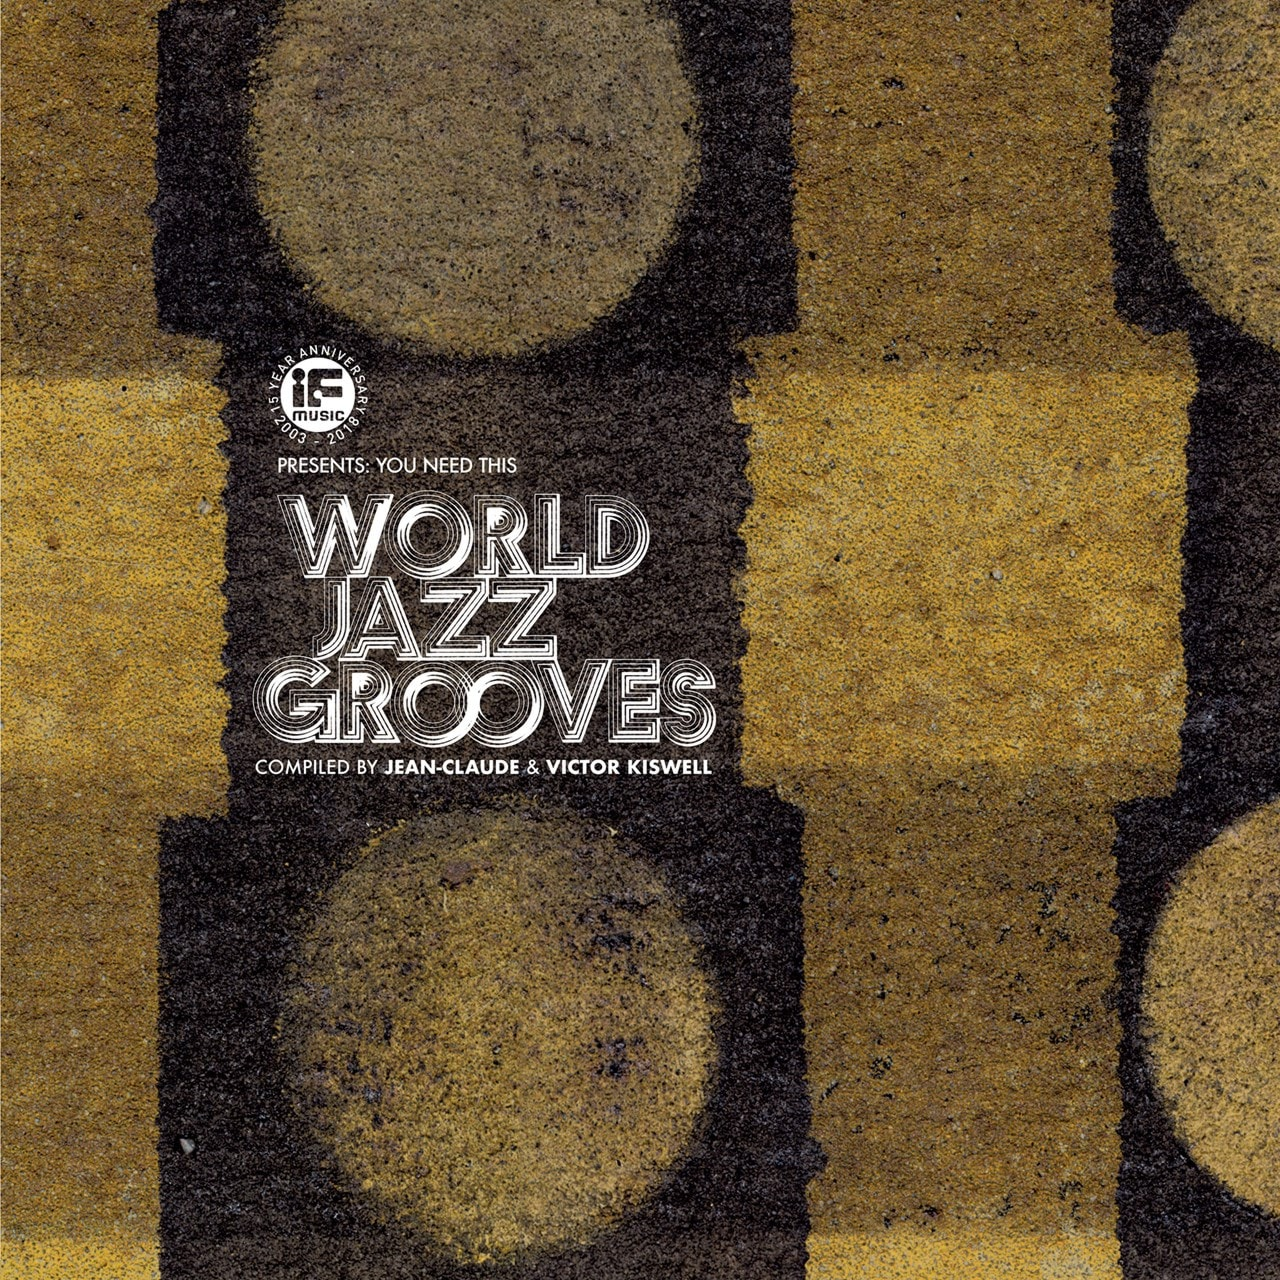 If Music Presents: You Need This: World Jazz Grooves - 1